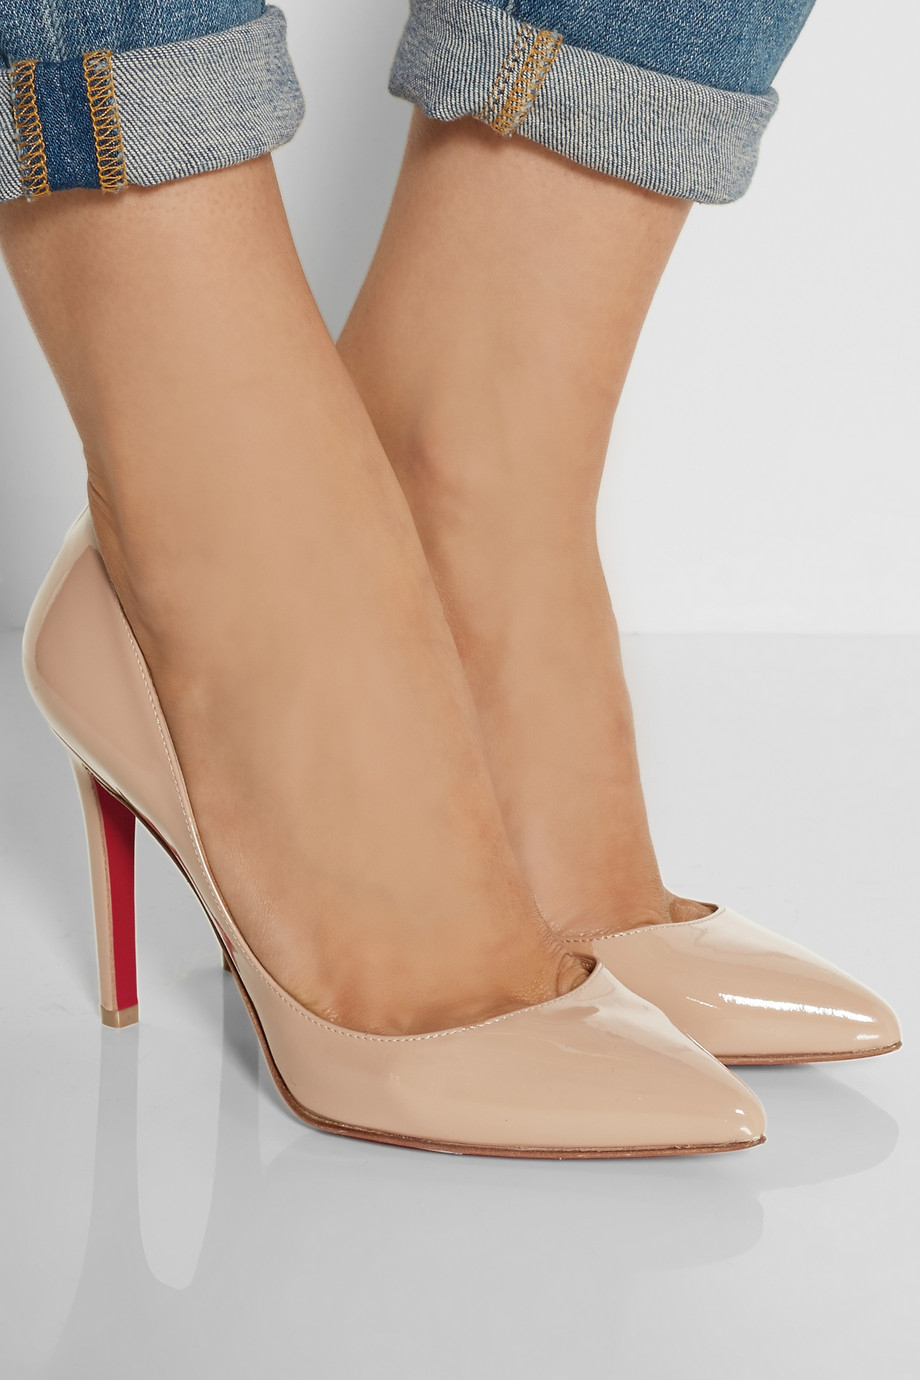 christian louboutin pigalle follies 100 patent pink pump